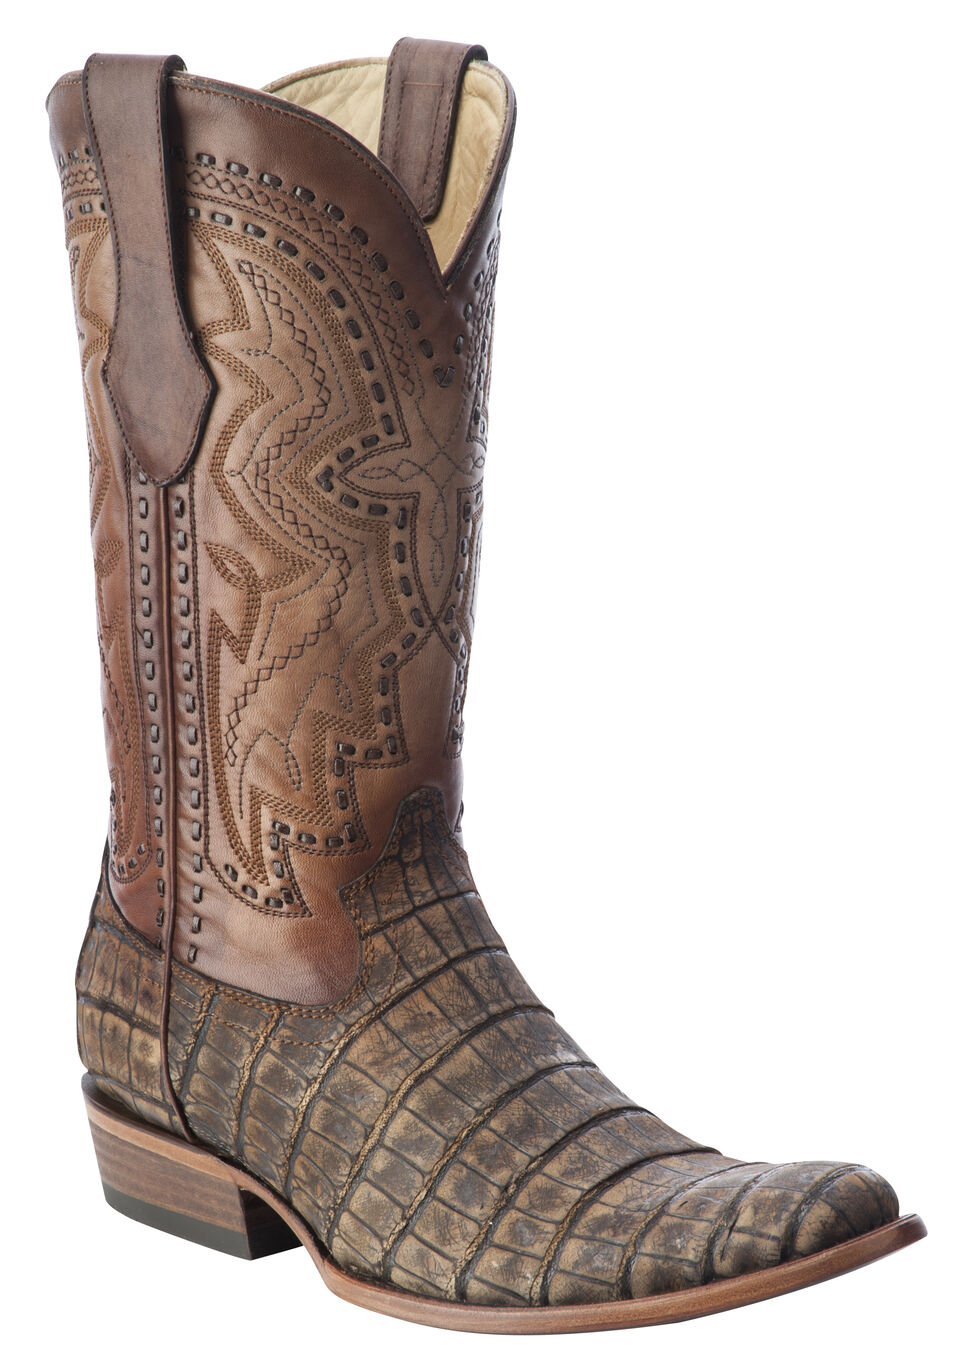 Corral Alligator Cowboy Boots - Round Toe, Antique Saddle, hi-res